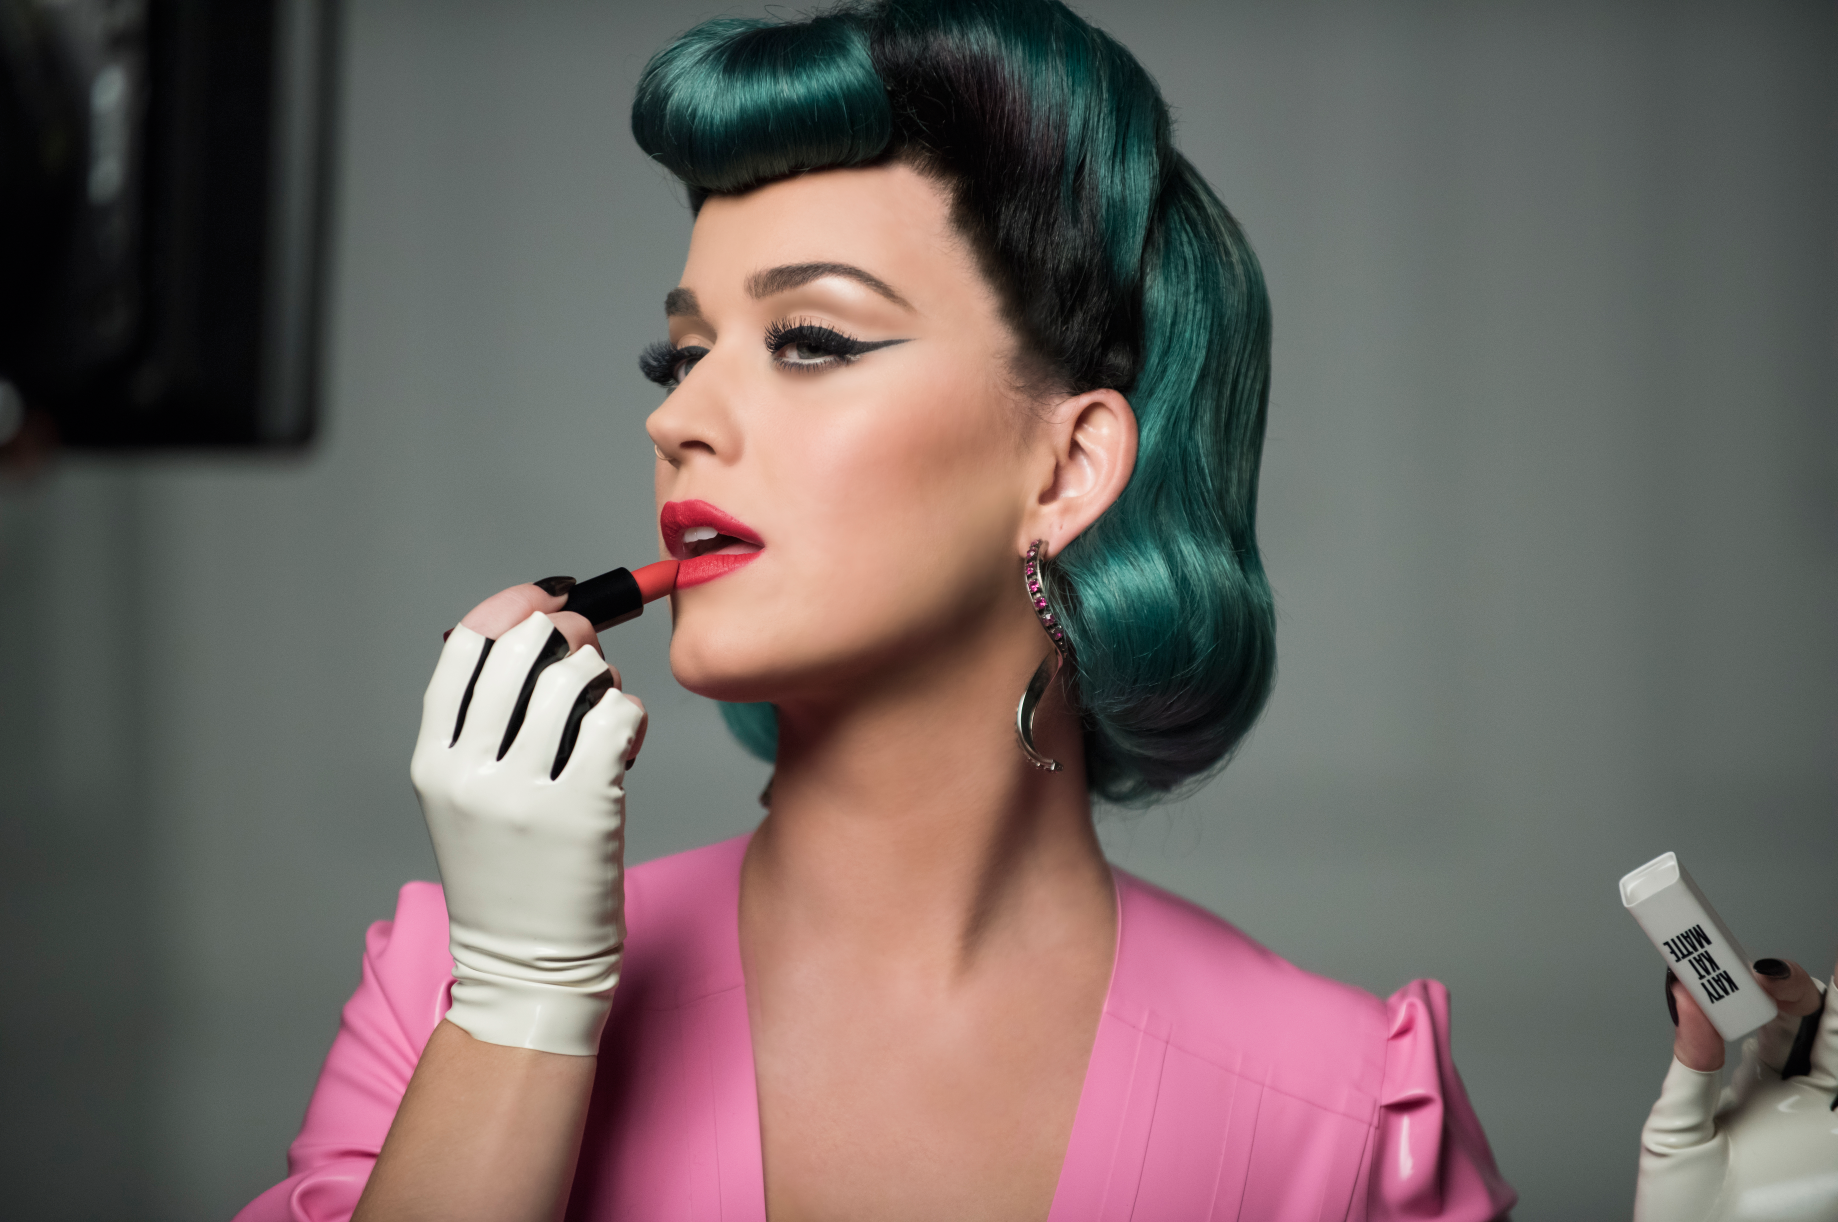 katy perry 2016 latest hd celebrities 4k wallpapers